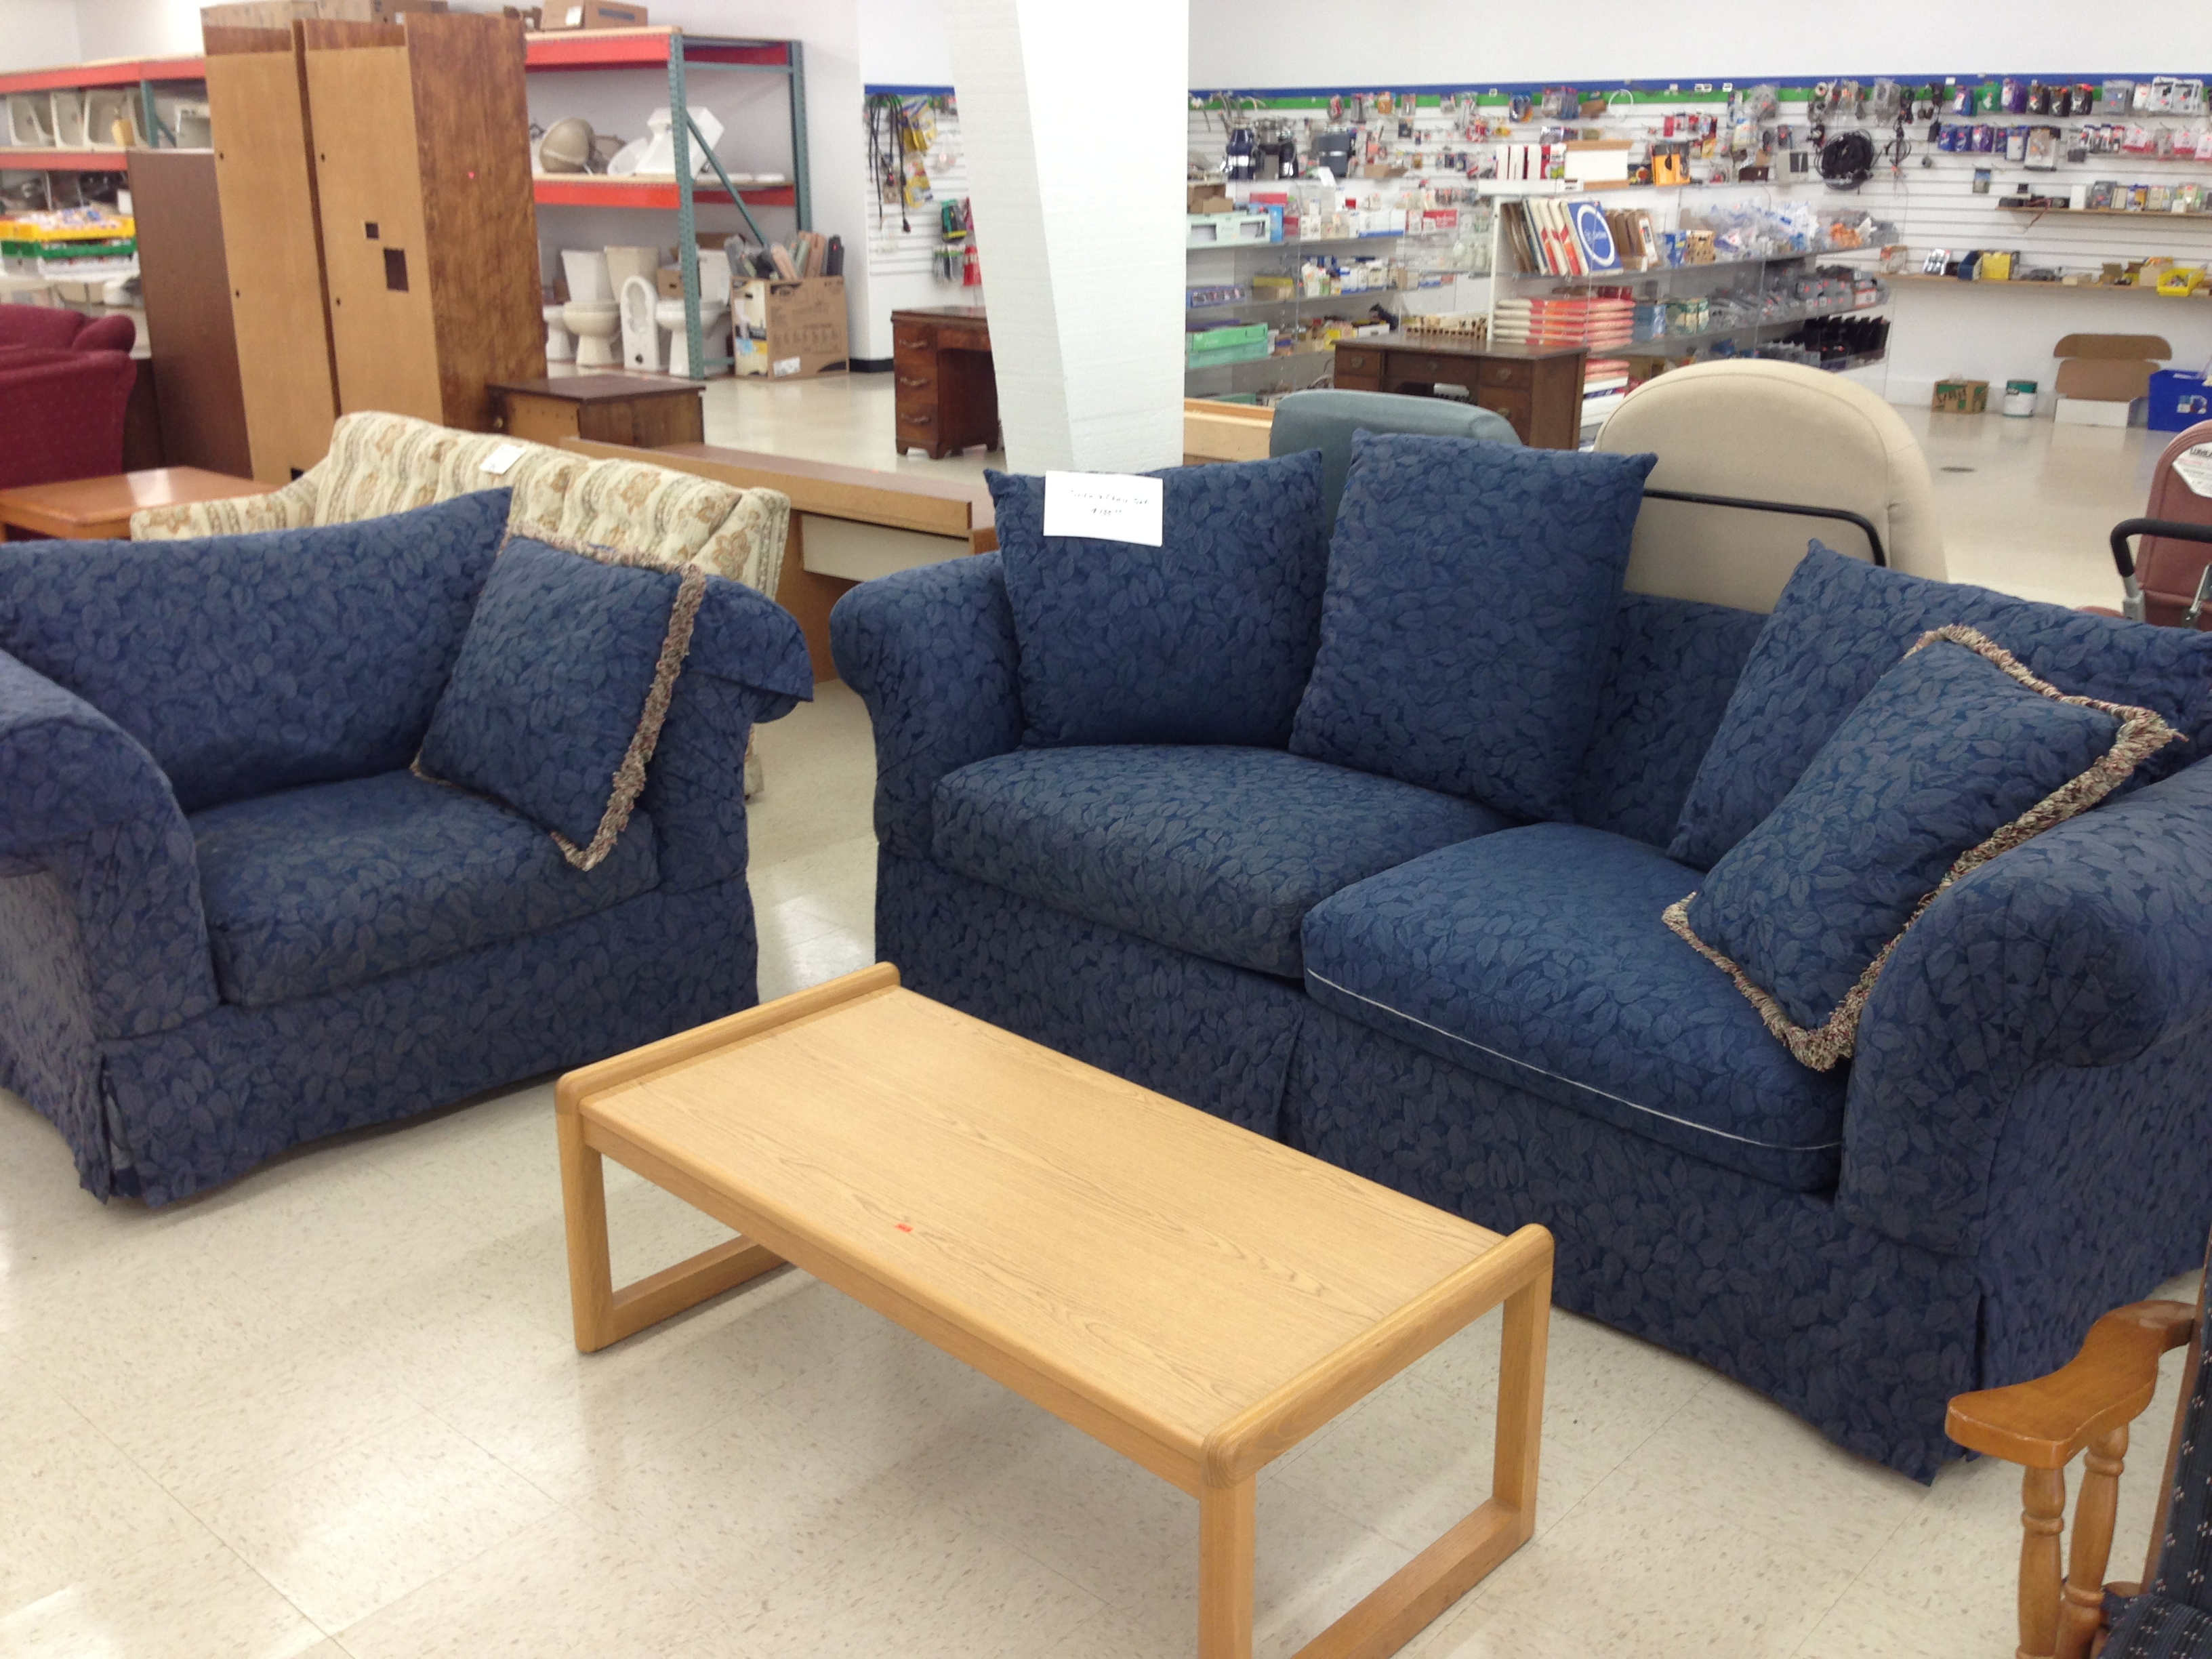 lounge outdoor brown product overstock chair wi grey light park shipping futons garden perry today free madison home